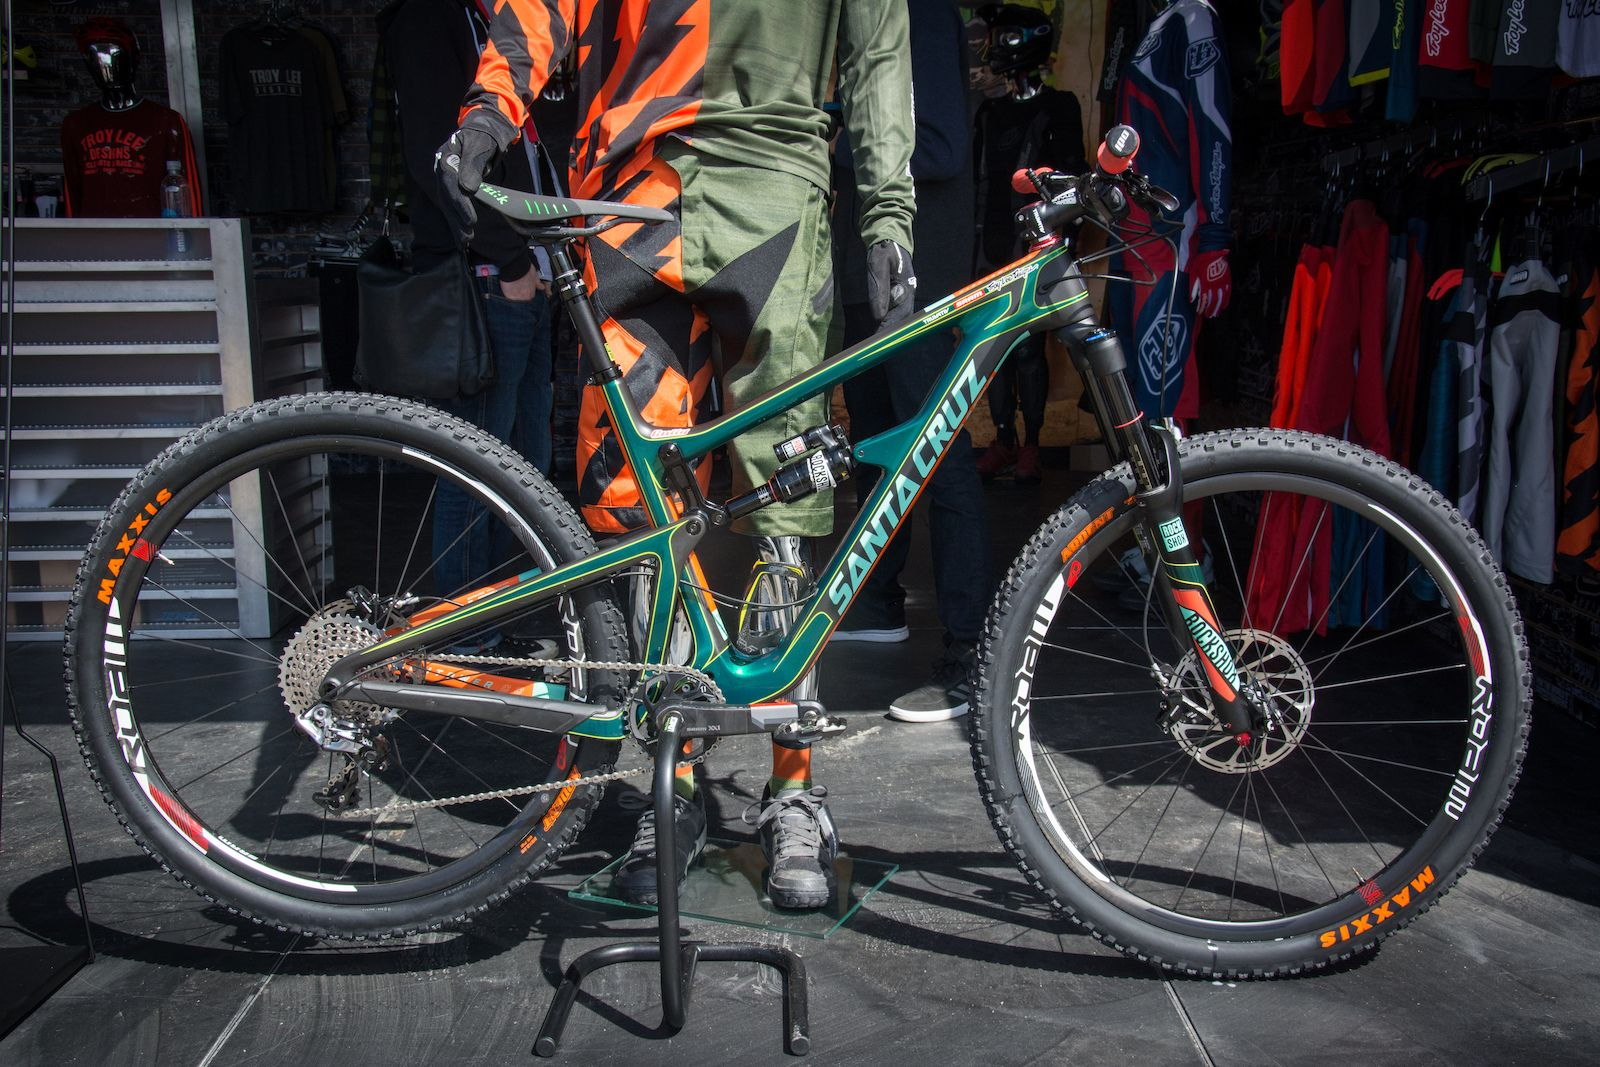 7603b251558 This is Dave Cullinan's custom painted Santa Cruz Tallboy. It has custom,  hand painted race stripes and a forest green the crew were using for a moto  ...